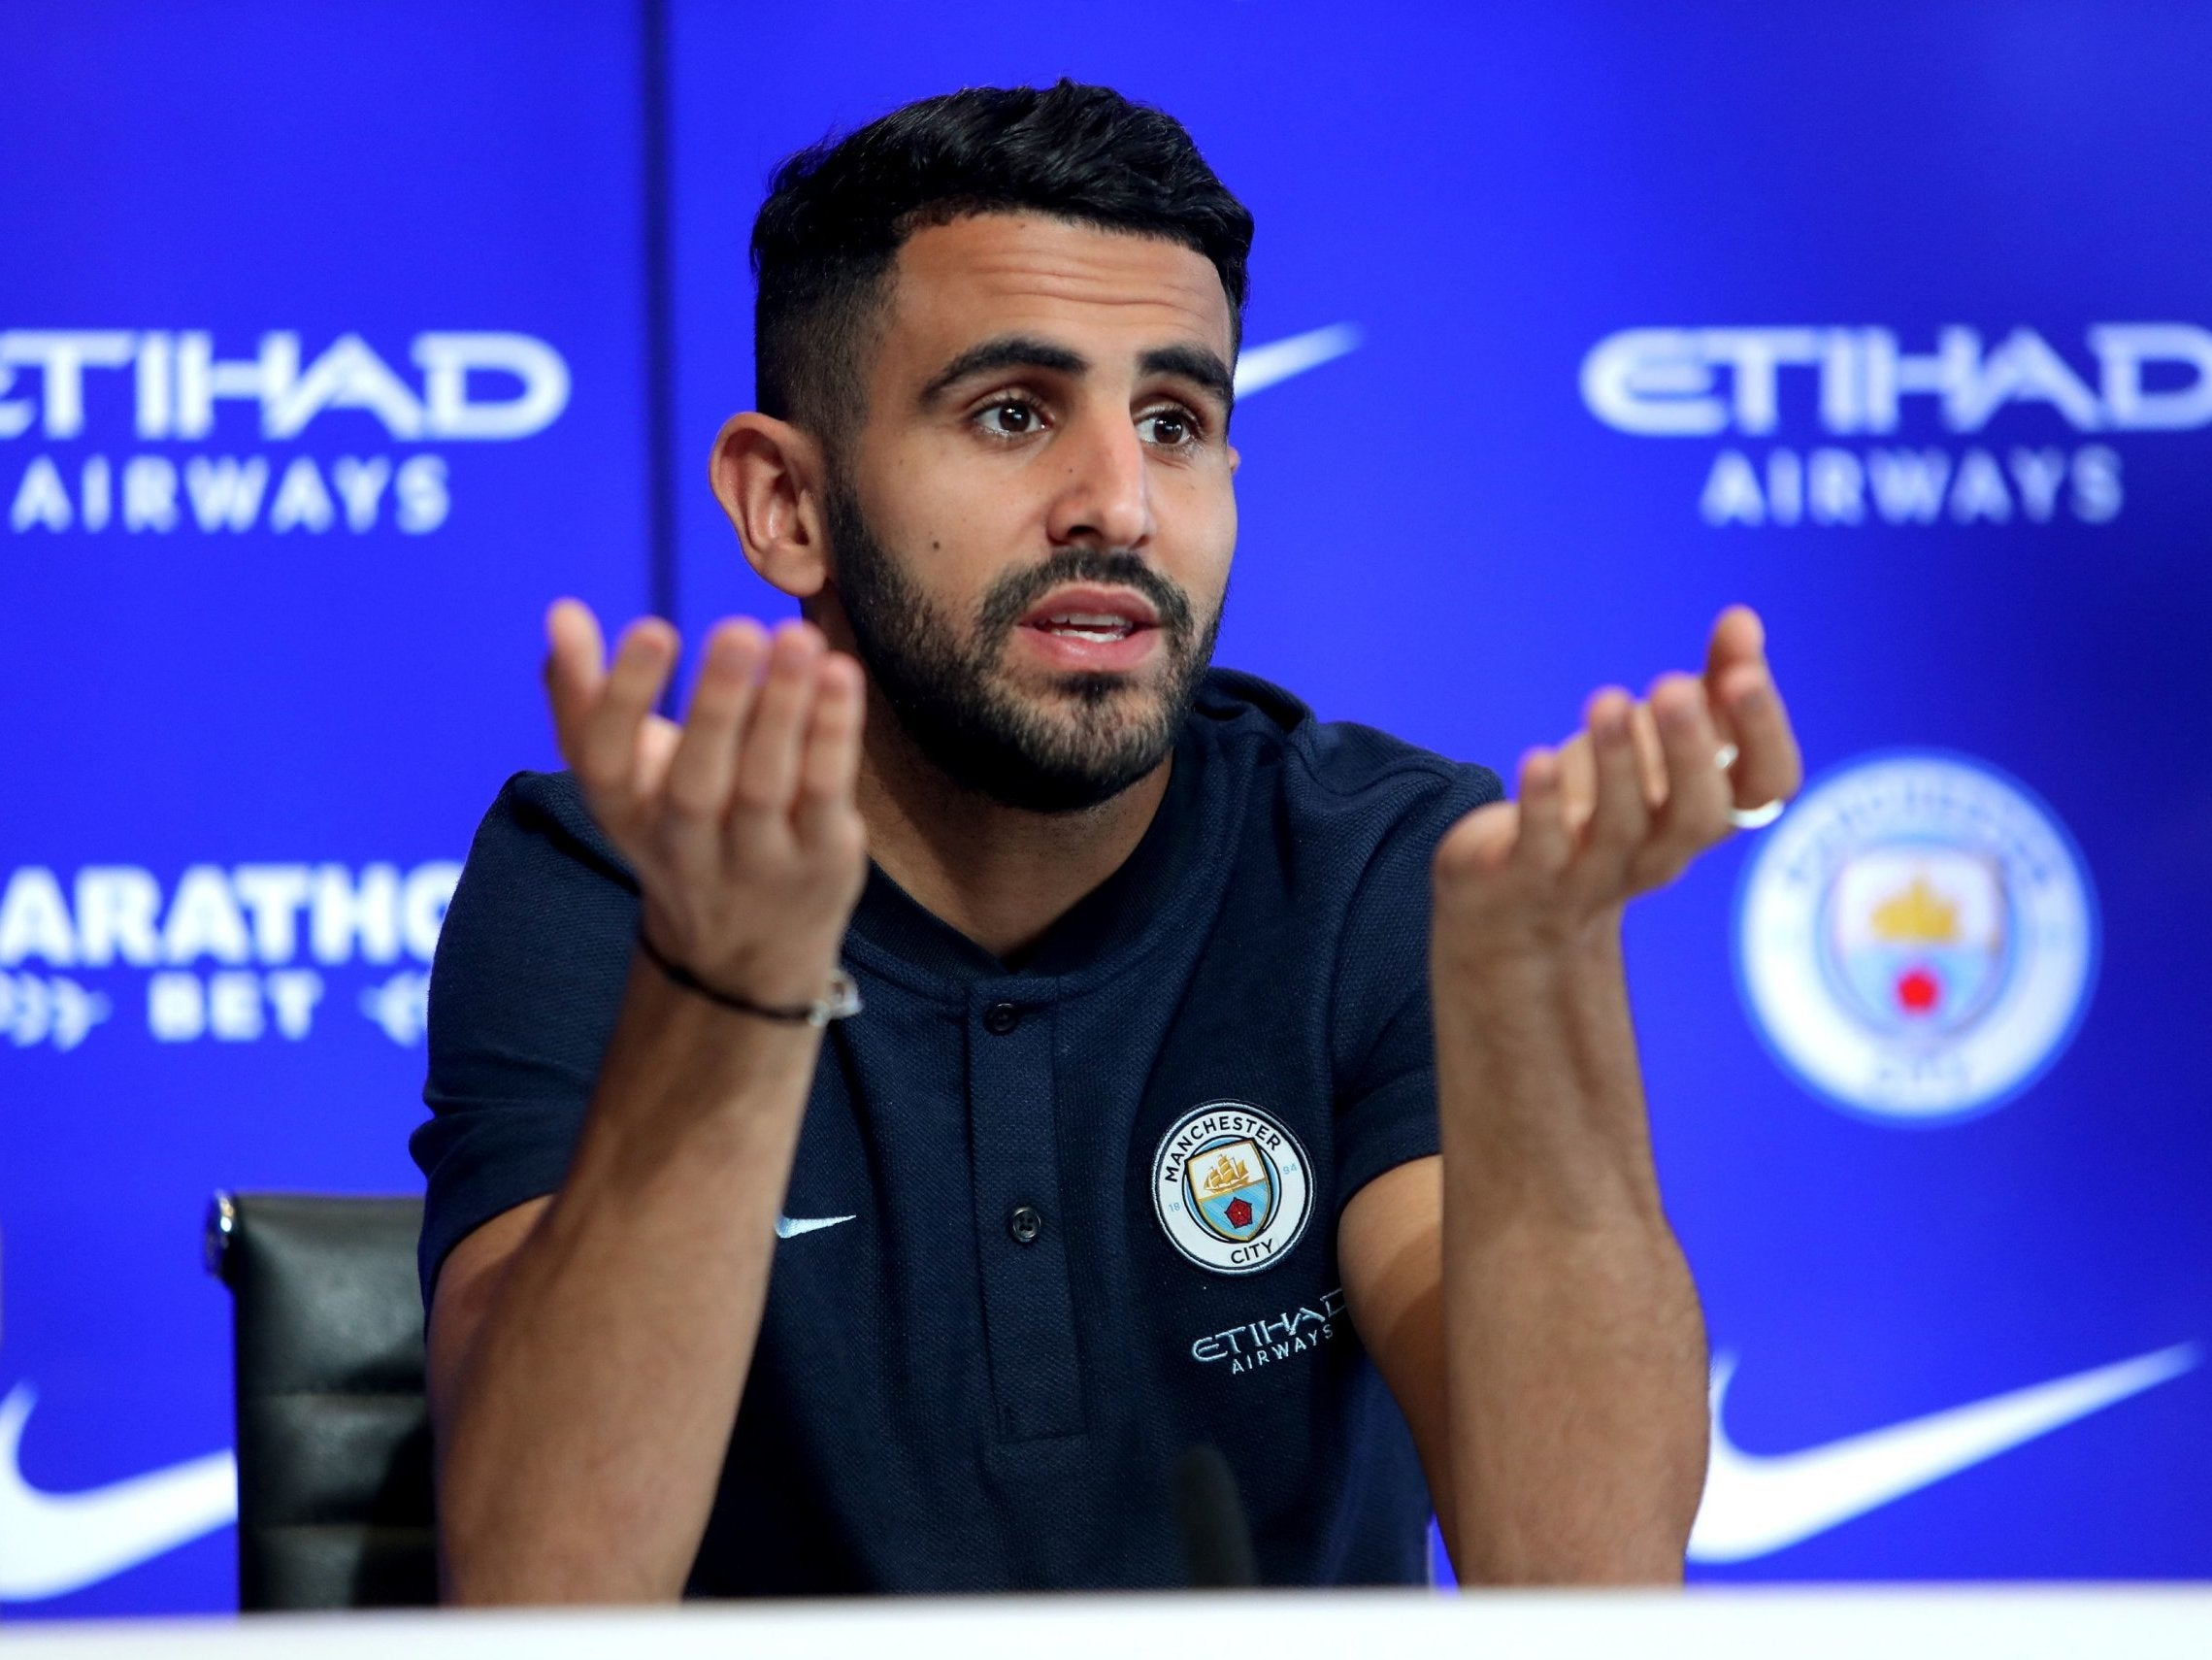 Riyad Mahrez, another talented schmuck scooped up by Manchester City simply for the sake of it